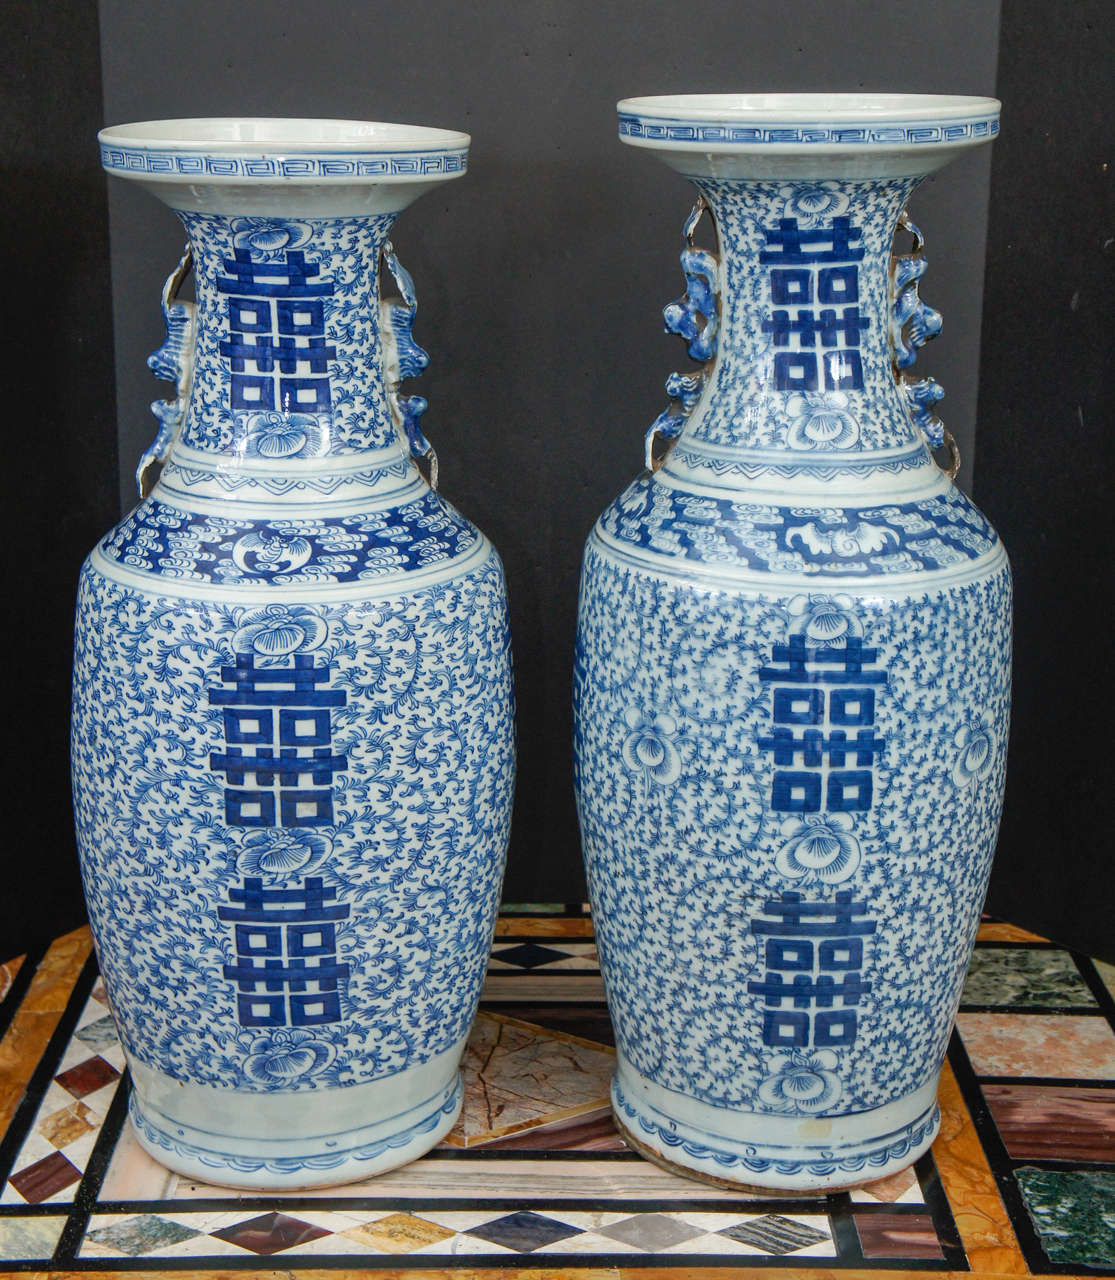 Pair of 19th century porcelain blue and white double happiness this large pair of vases with double happiness symbols was made in china in the very reviewsmspy